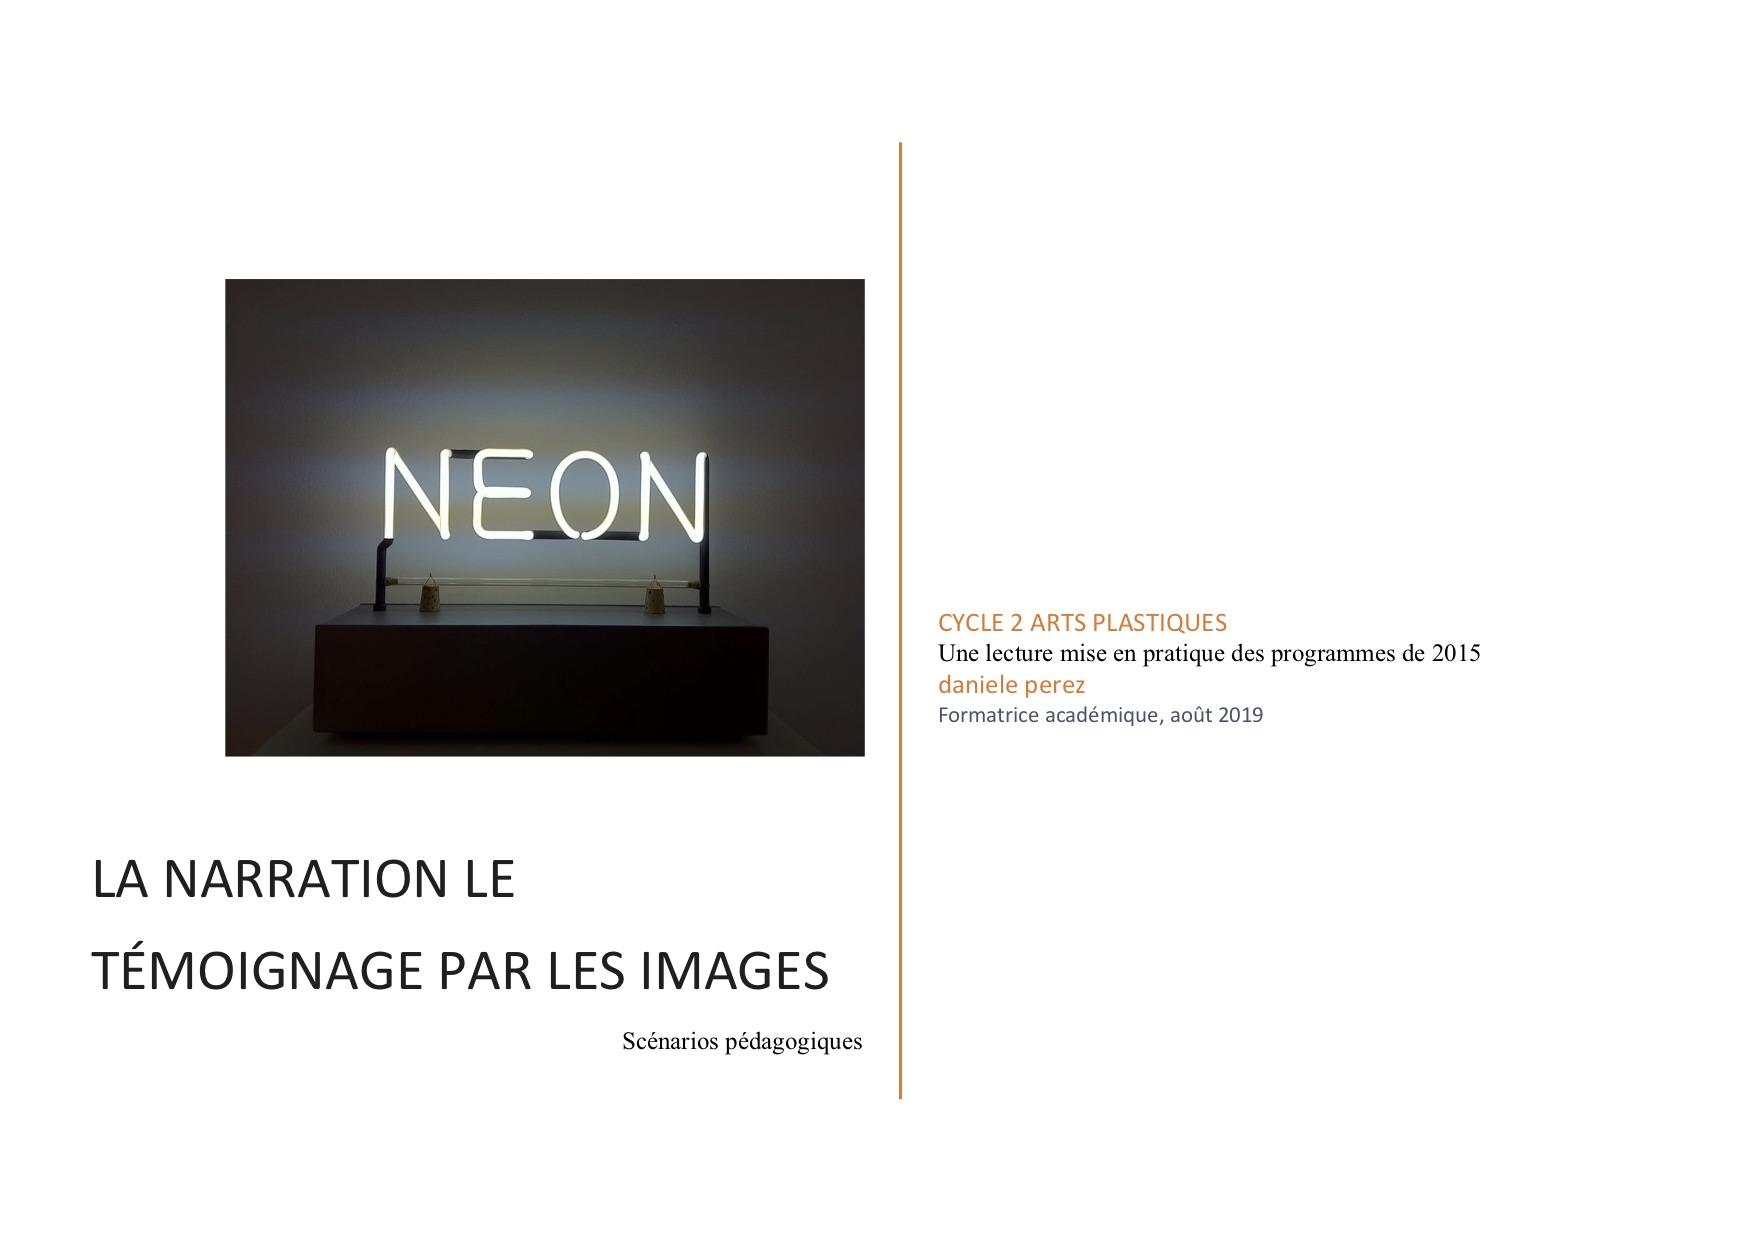 La narration, le témoignage par les images, cycle 2